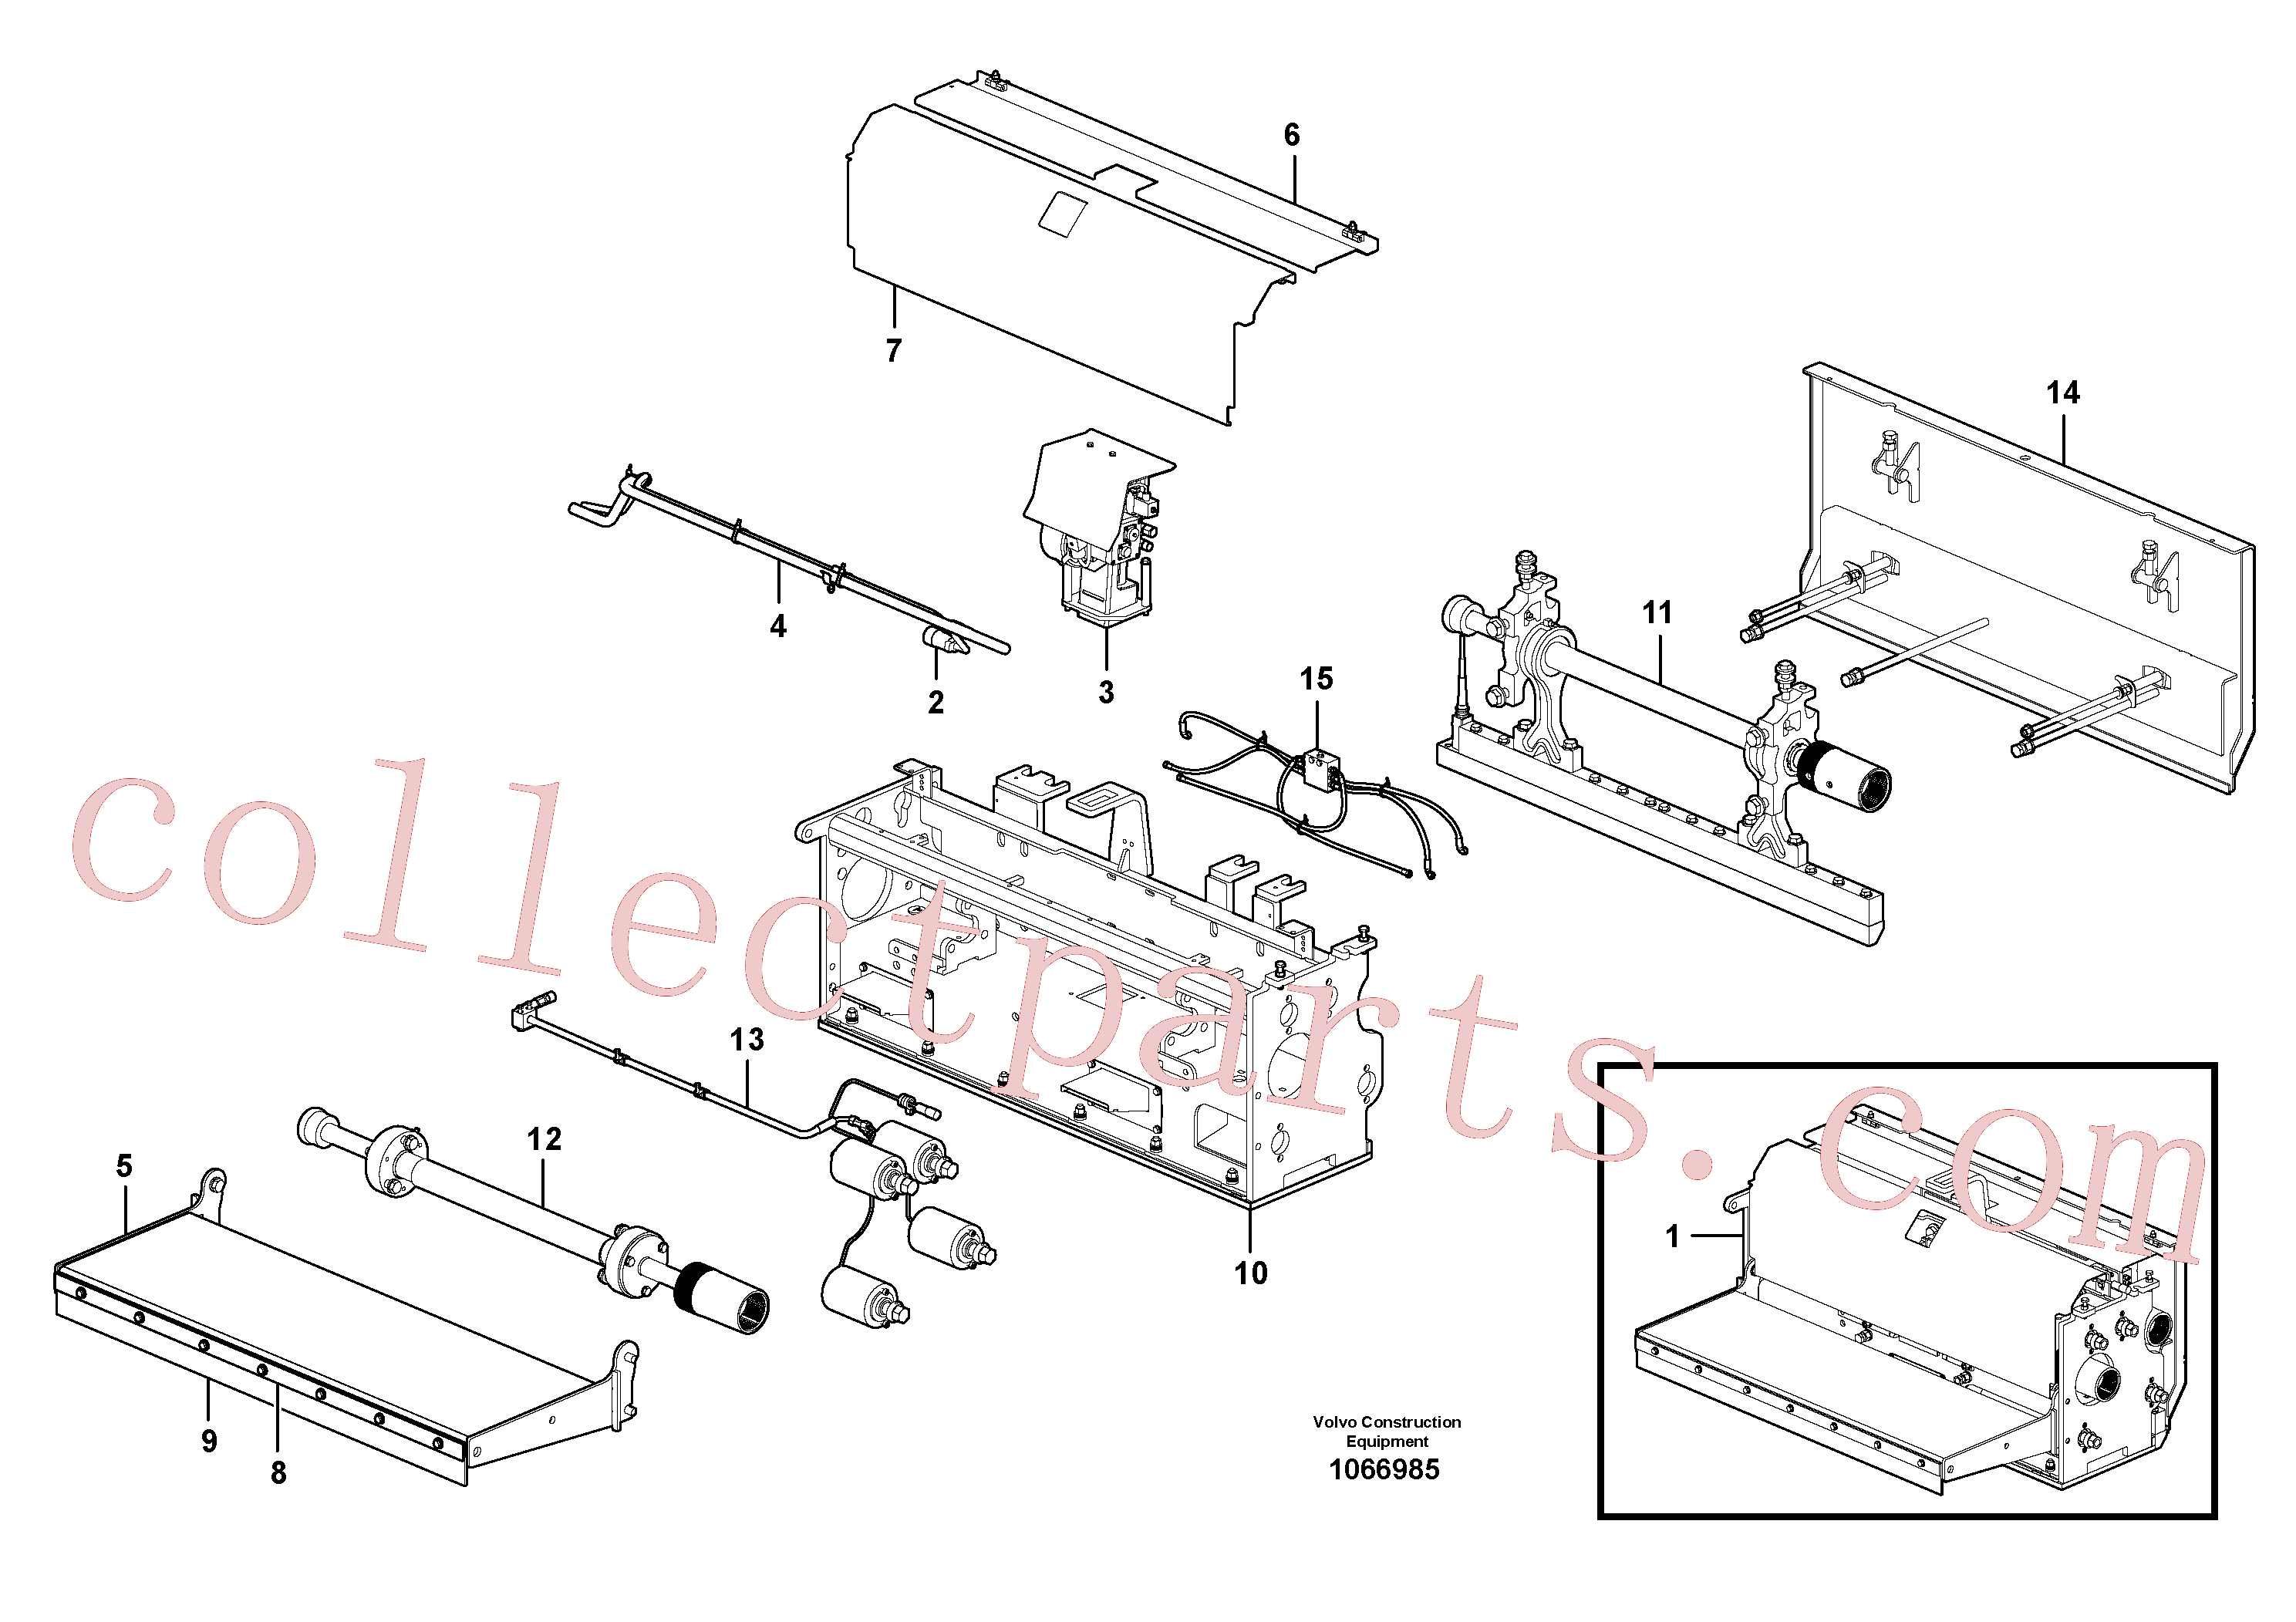 RM80765019 for Volvo Extension(1066985 assembly)